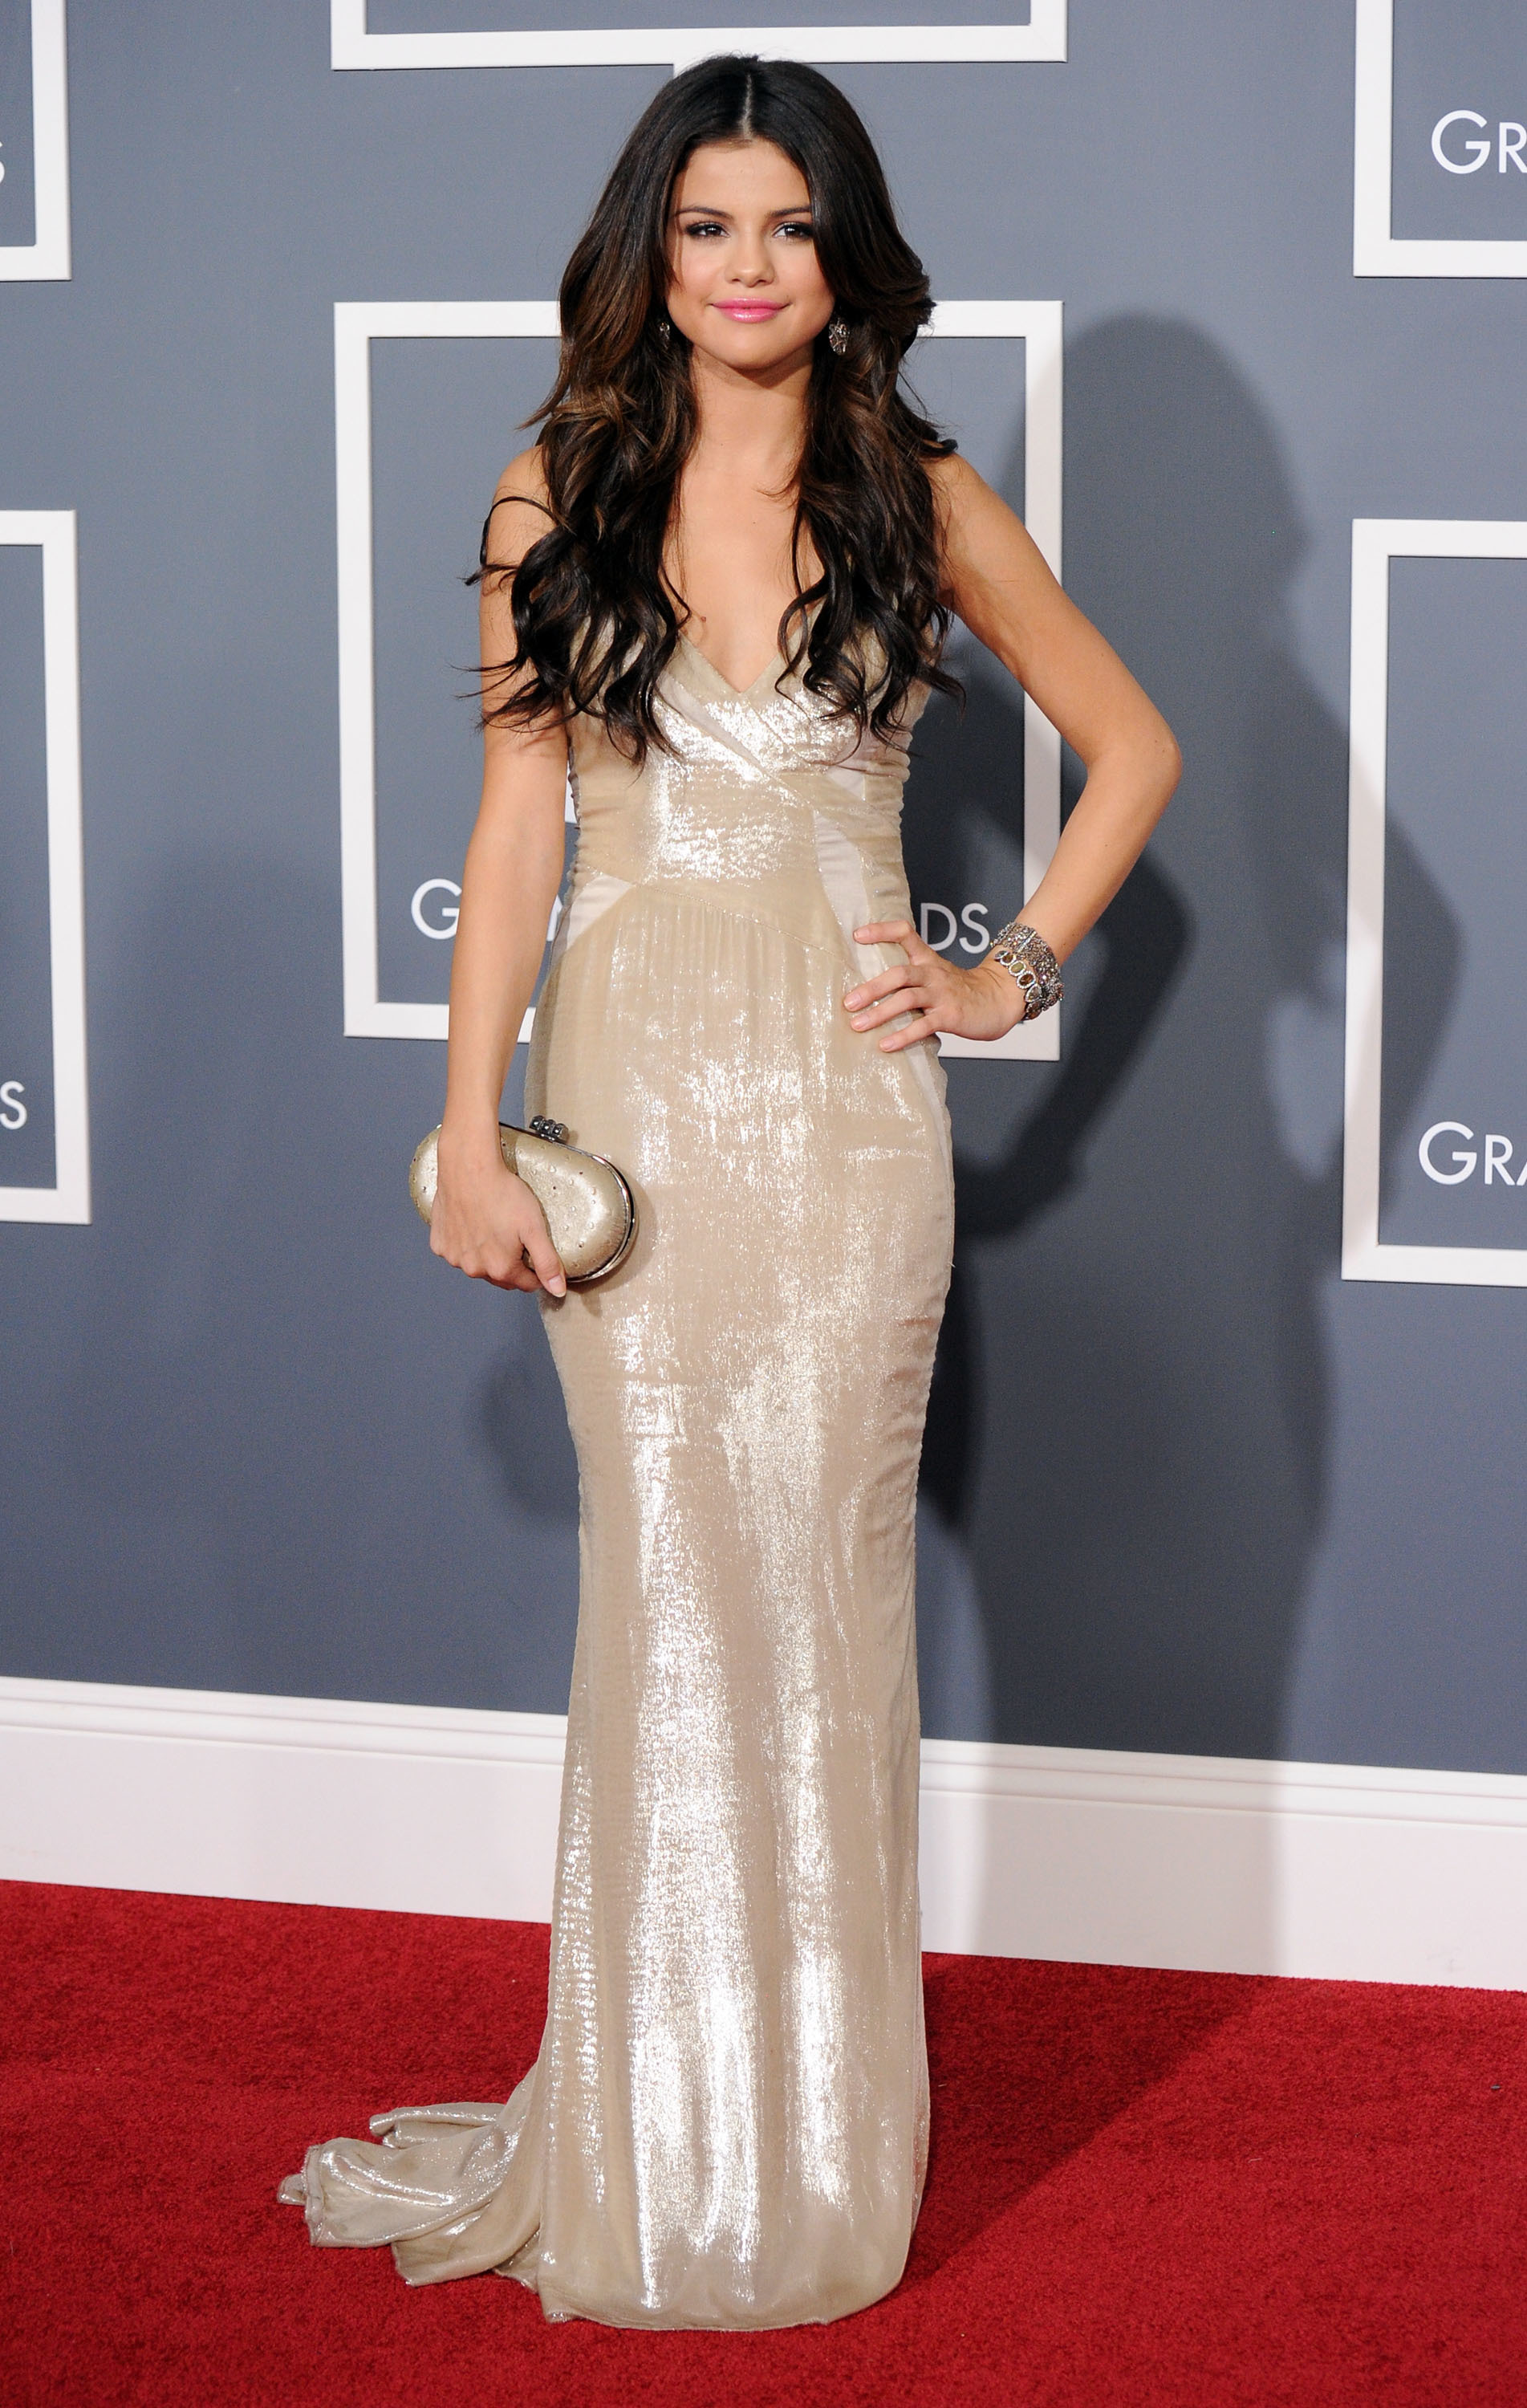 Selena Gomez arrives at The 53rd Annual GRAMMY Awards held at Staples Center in Los Angeles on Feb. 13, 2011.